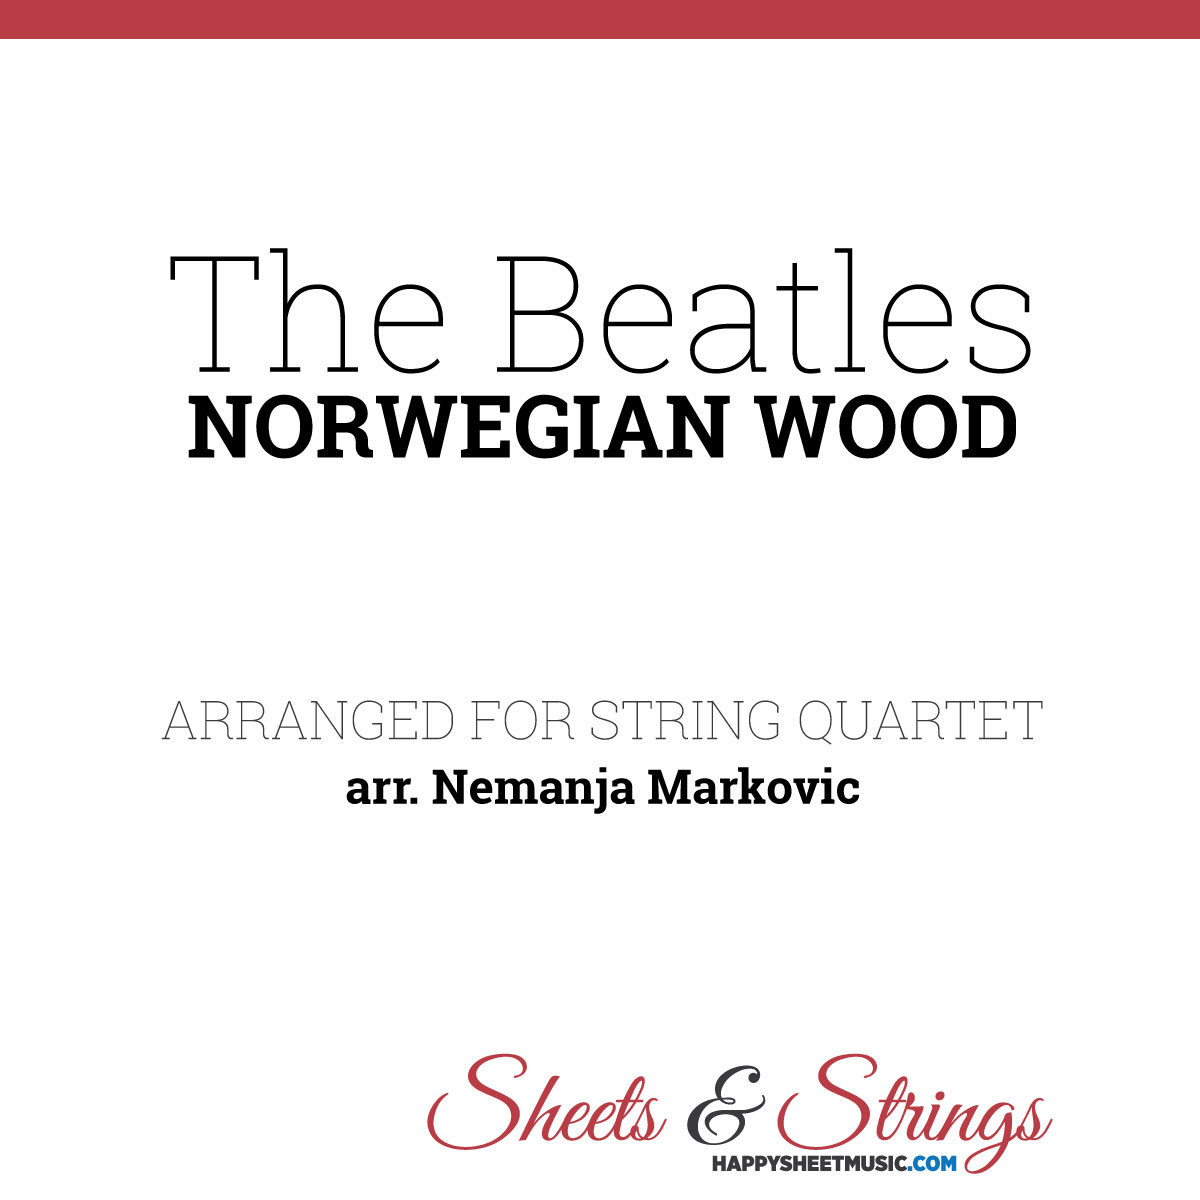 The Beatles - Norwegian Wood - Sheet Music for String Quartet - Music Arrangement for String Quartet